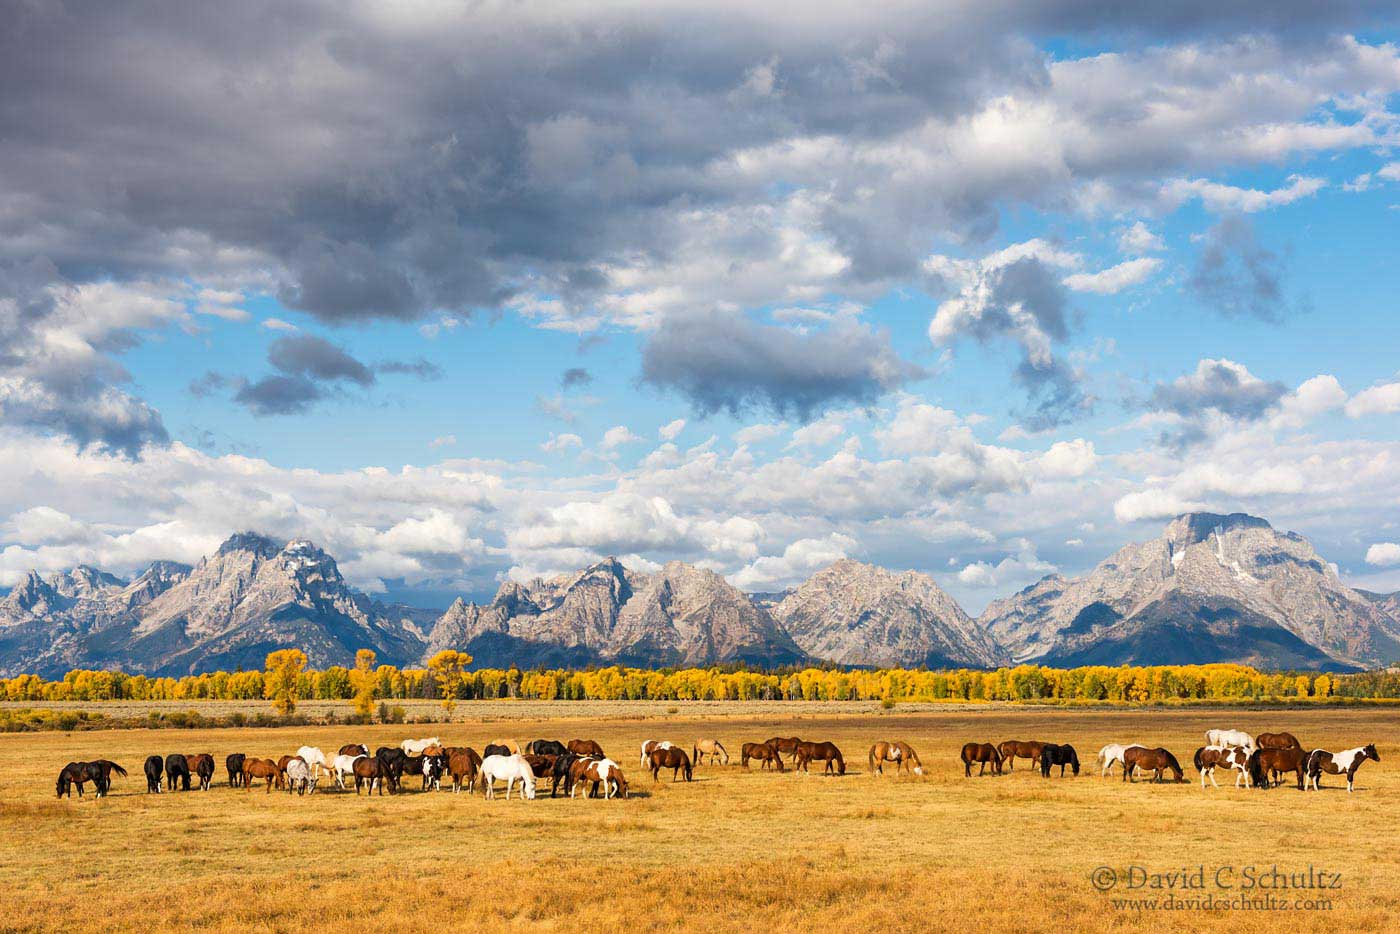 Horses and Grand Teton National Park - Image #44-4583